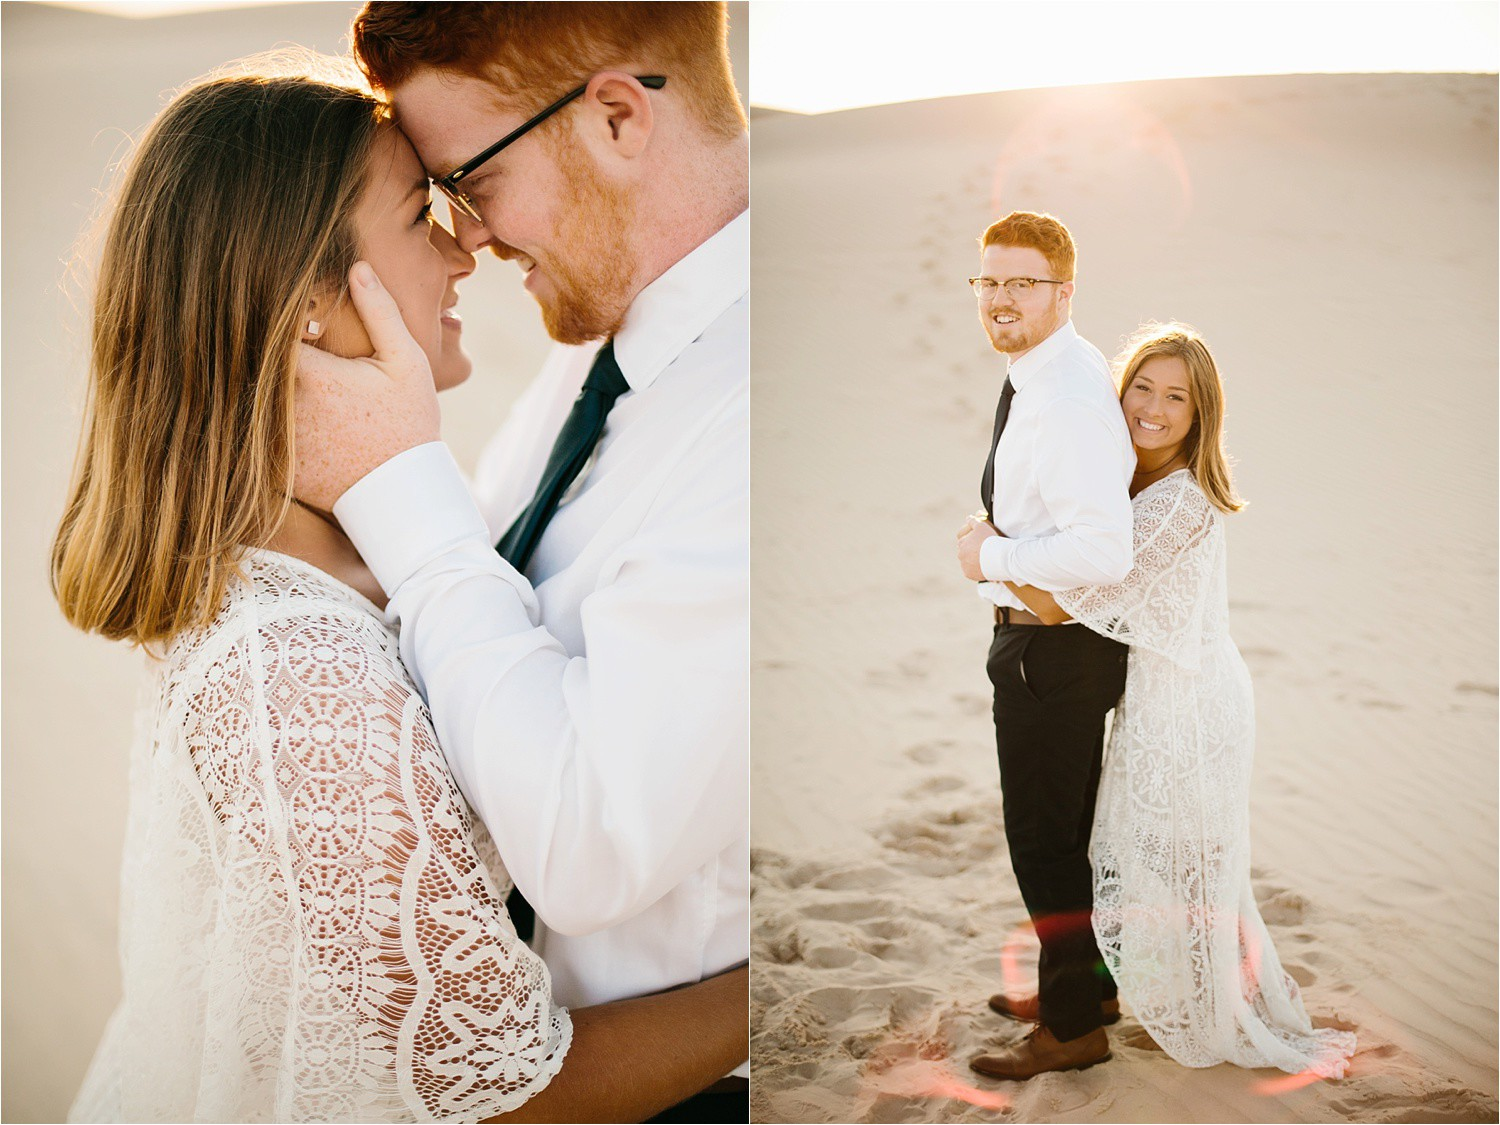 Lauren + Jacob __ a monahans sand dunes engagement session at sunrise by North Texas Wedding Photographer, Rachel Meagan Photography __ 19